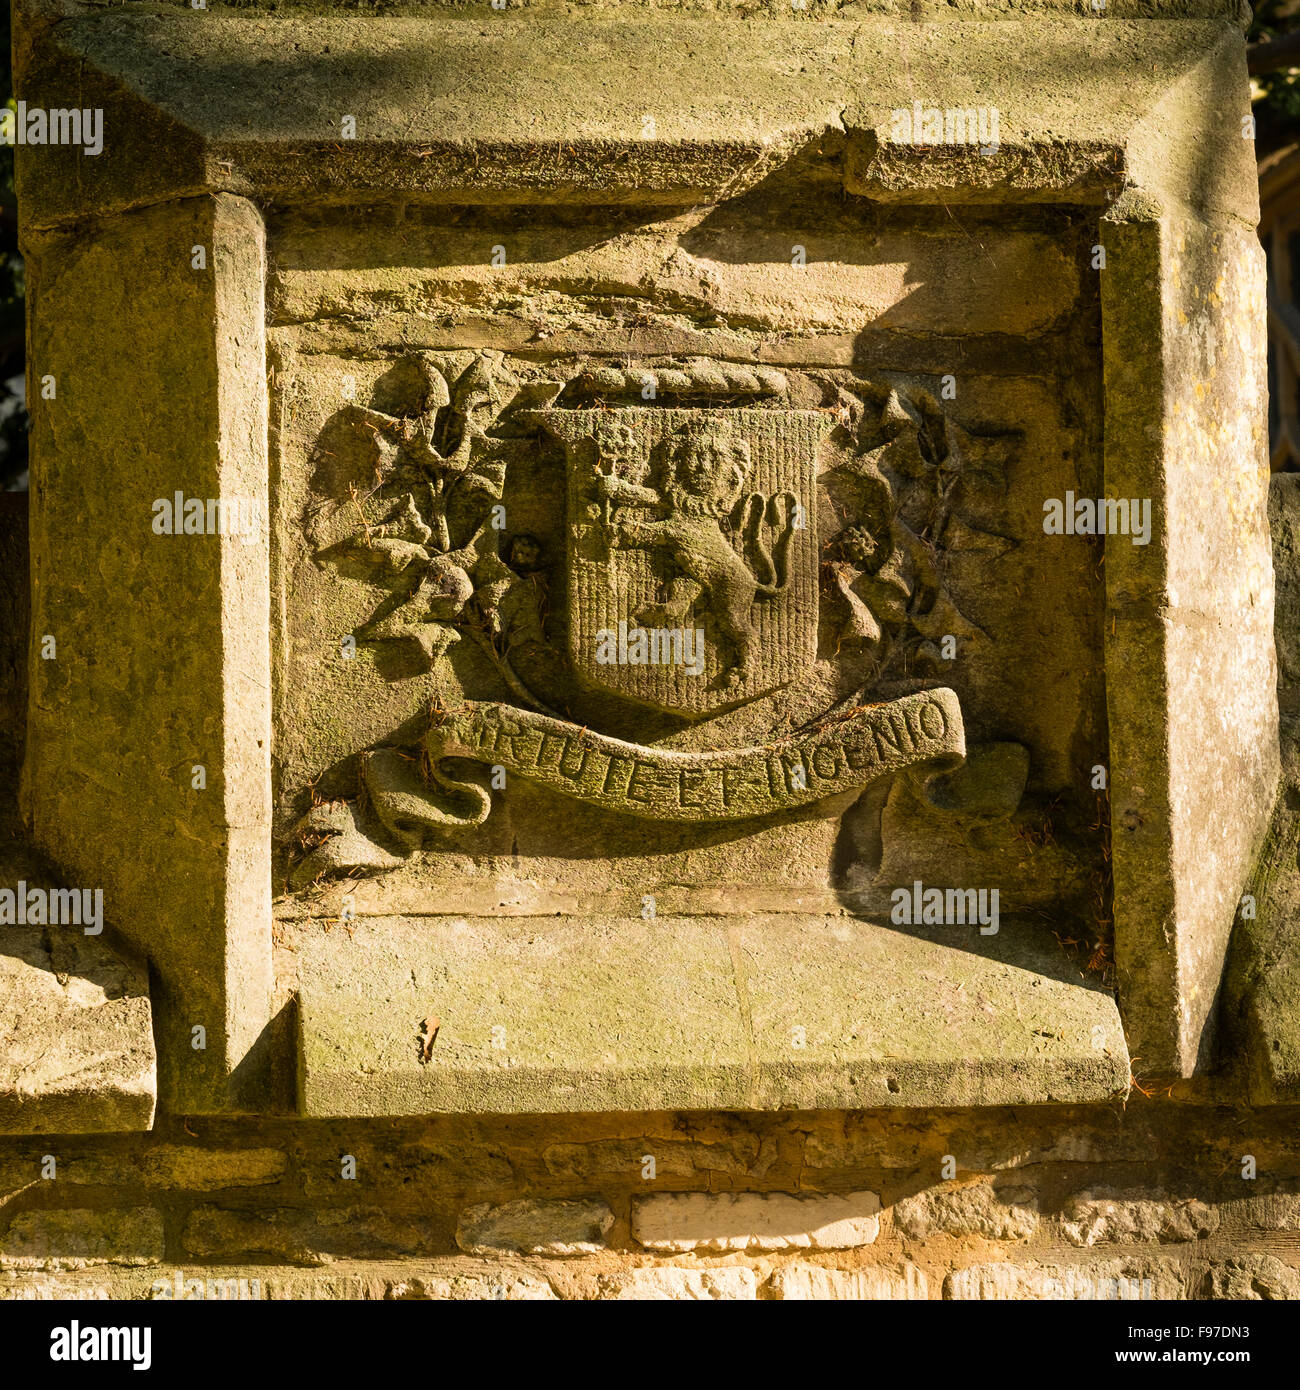 Stone panel with coat of arms with lion on shield and motto VIRTUTE ET INGENIO - By virtue and ability : Carved - Stock Image